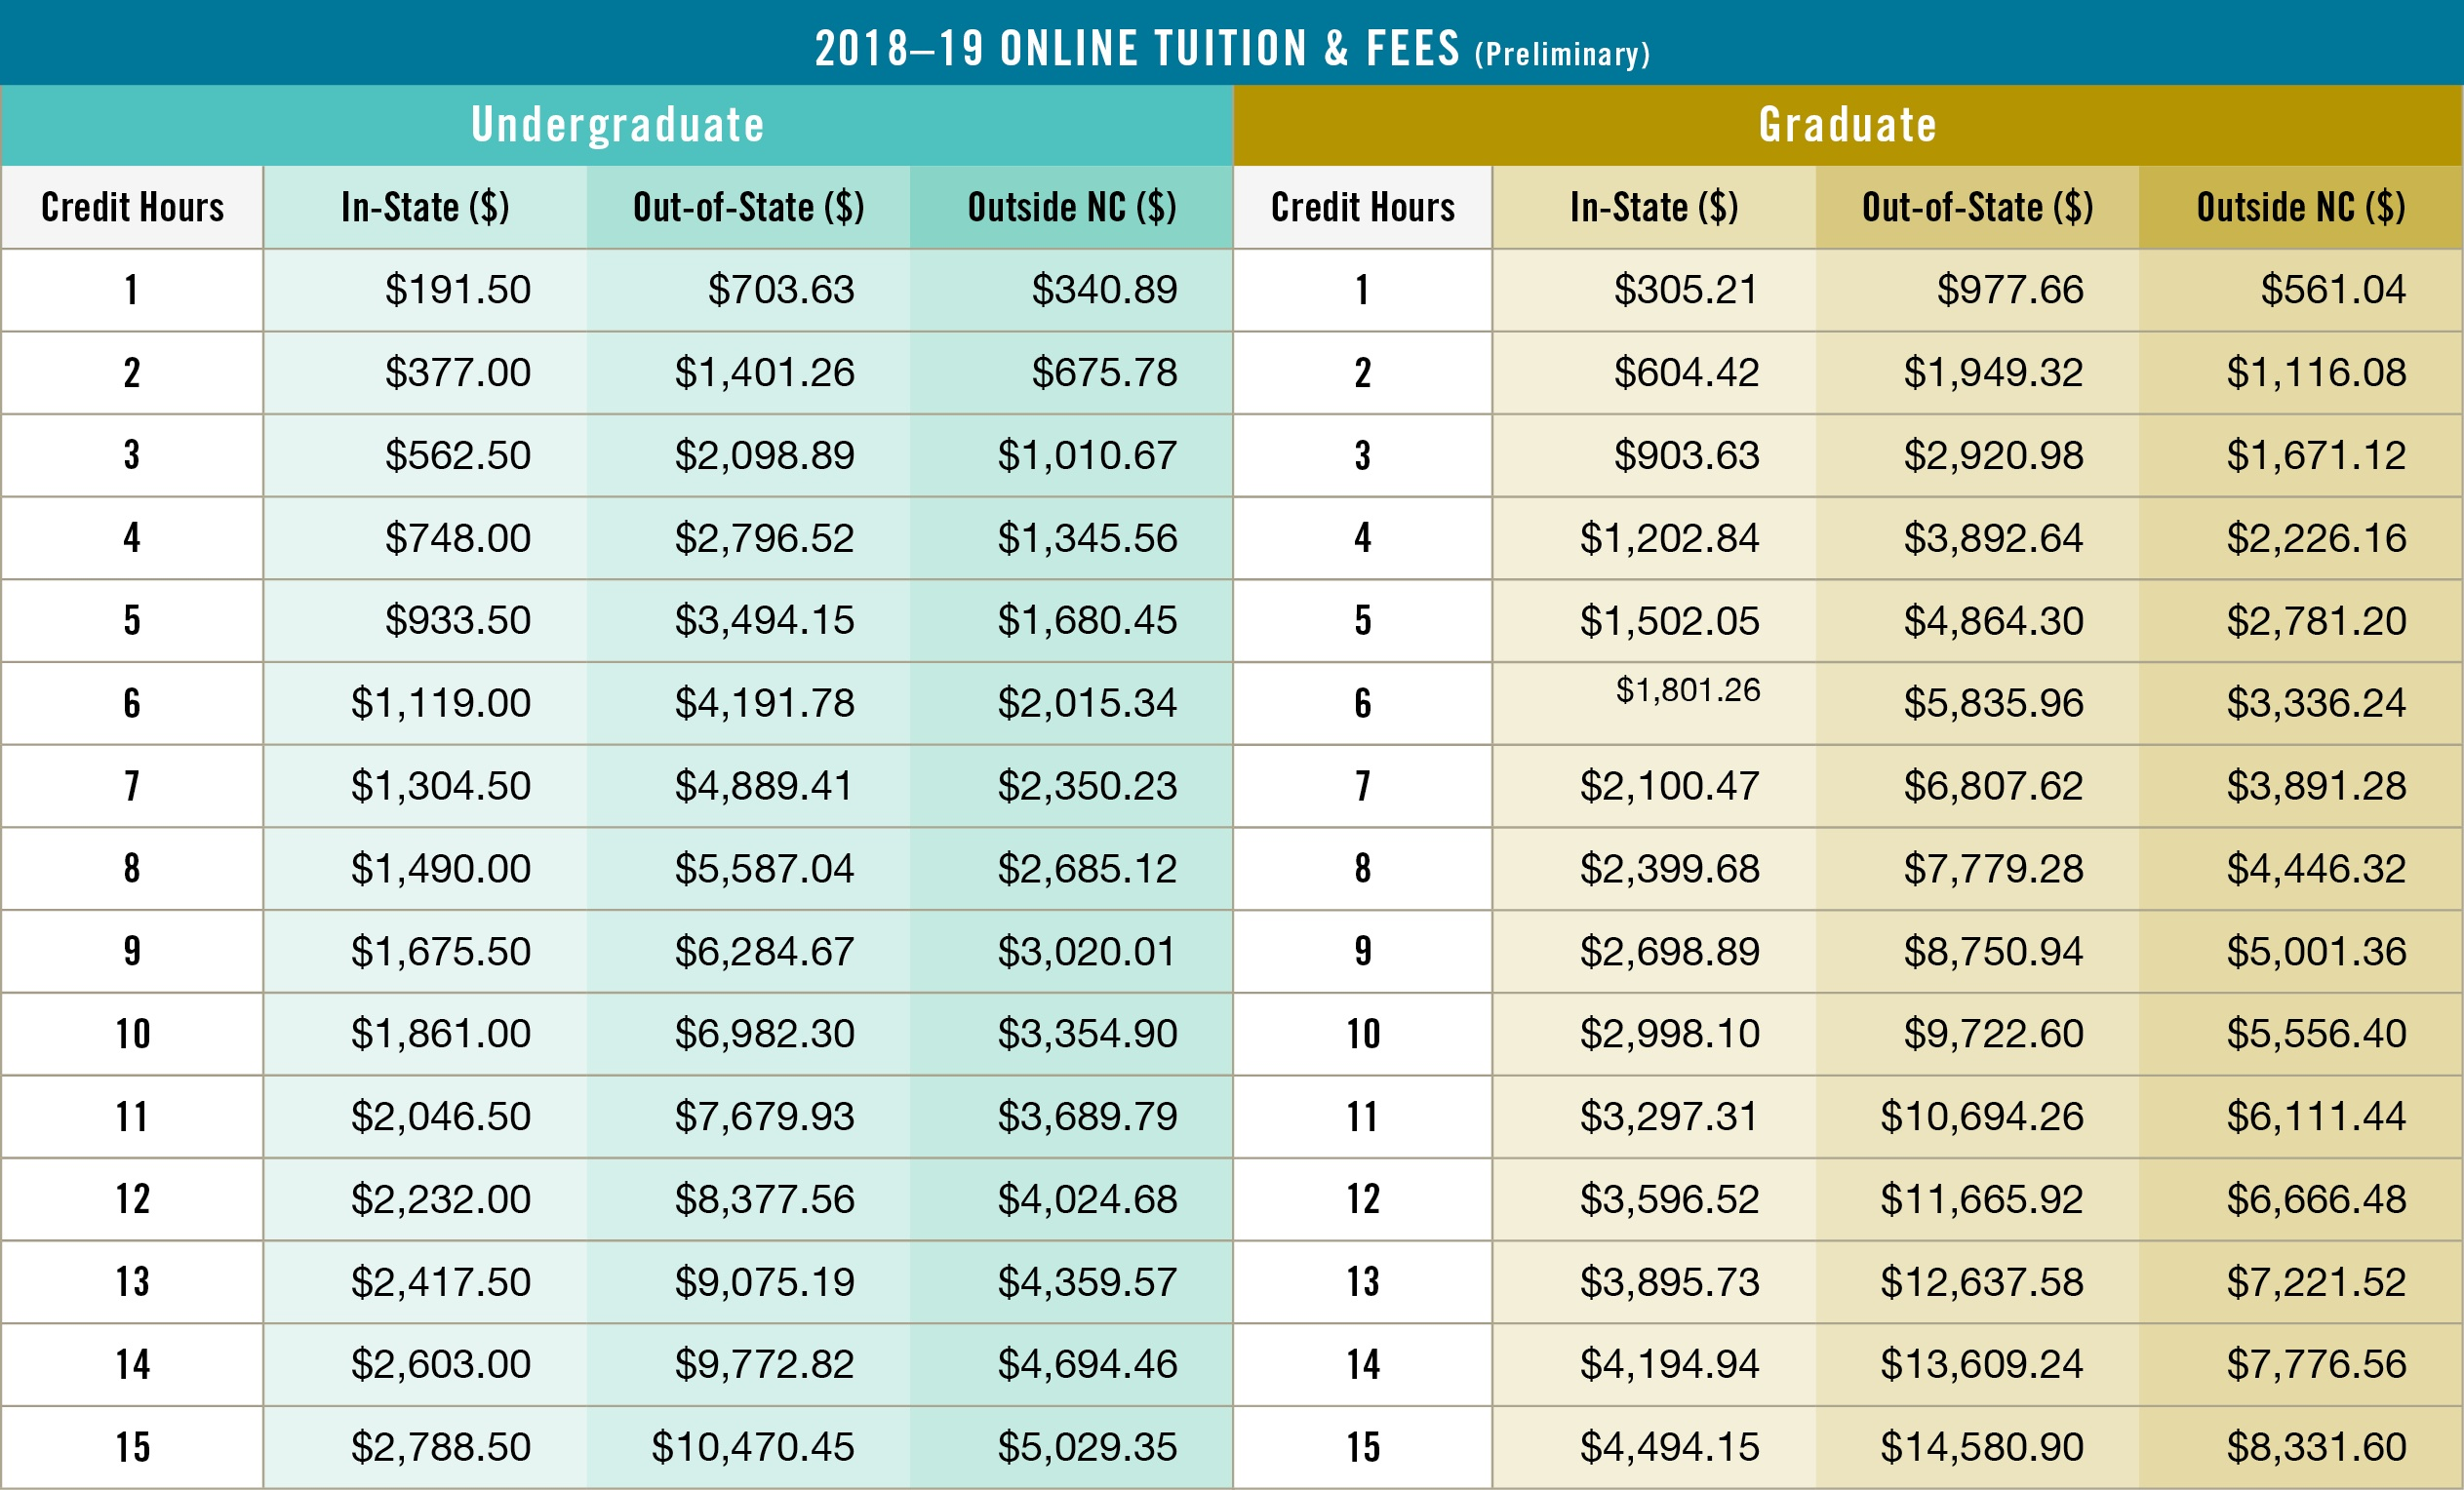 UNCG-Online_Tuition-Tables_Combined.jpg